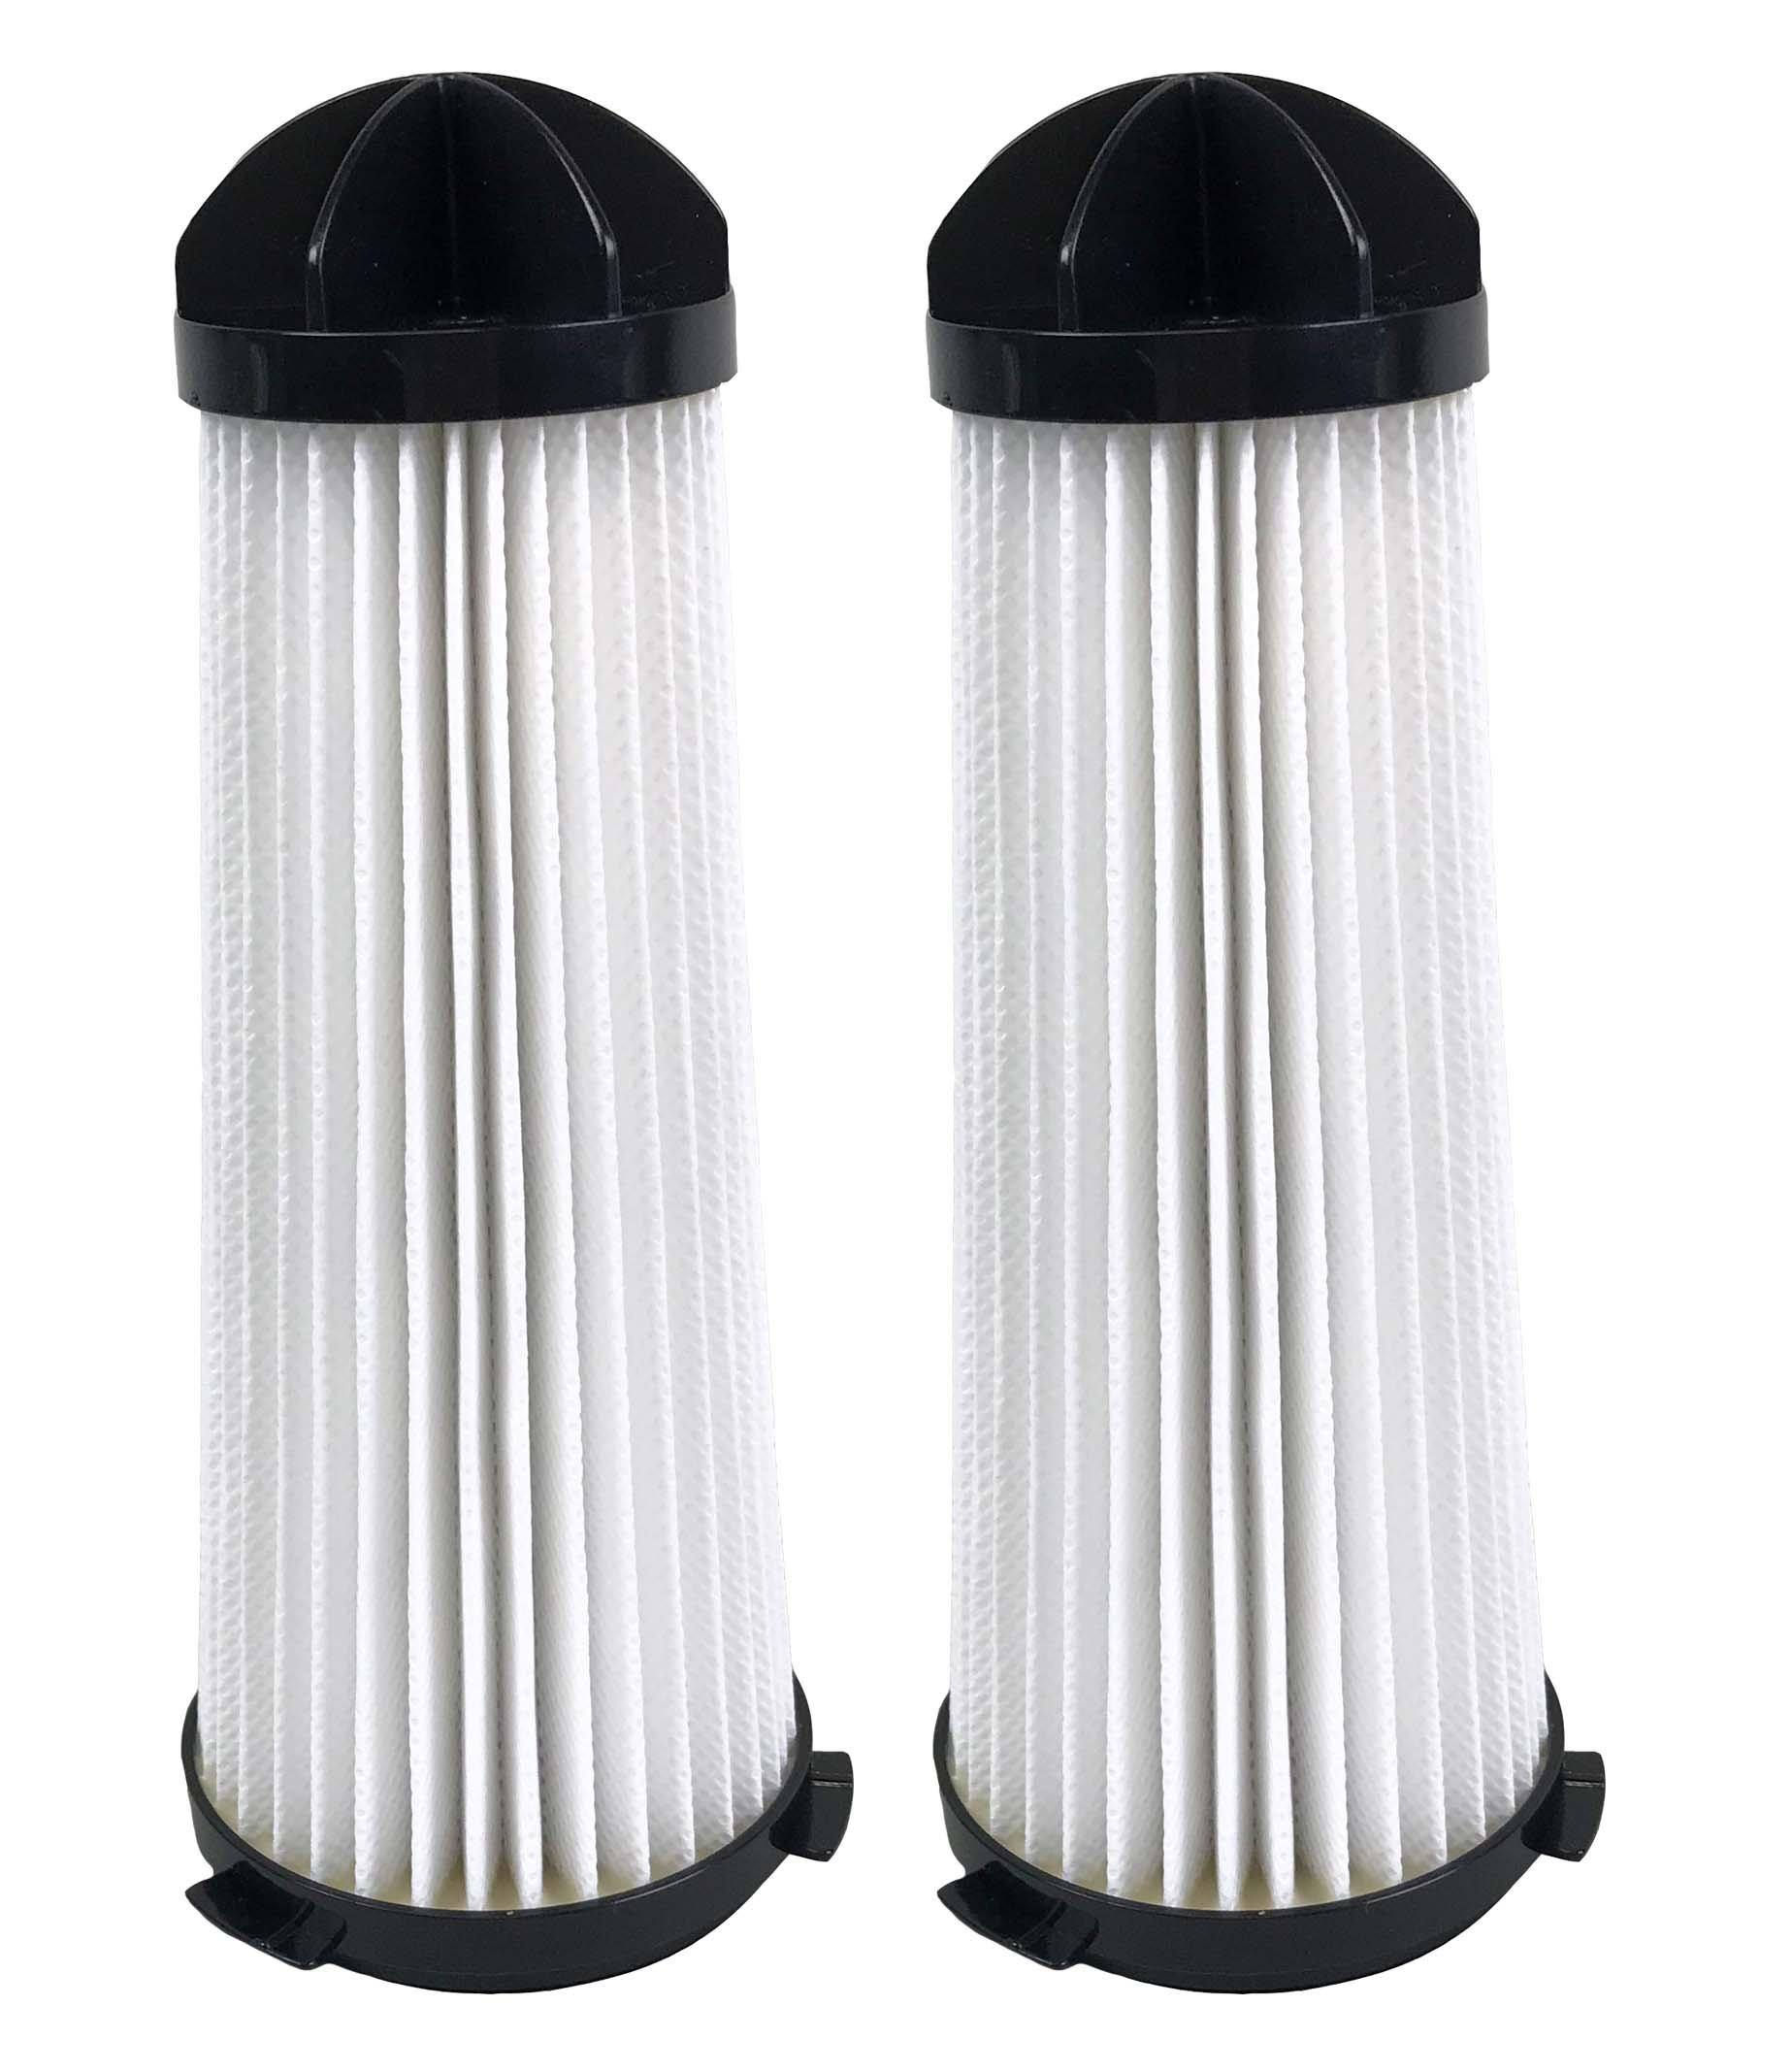 Think Crucial 2 Replacements for Hoover Shoulder Vac HEPA Style Filter Fits C2401 Commercial Backpack, Compatible With Part # 2KE2110000 & 2-KE2110-000